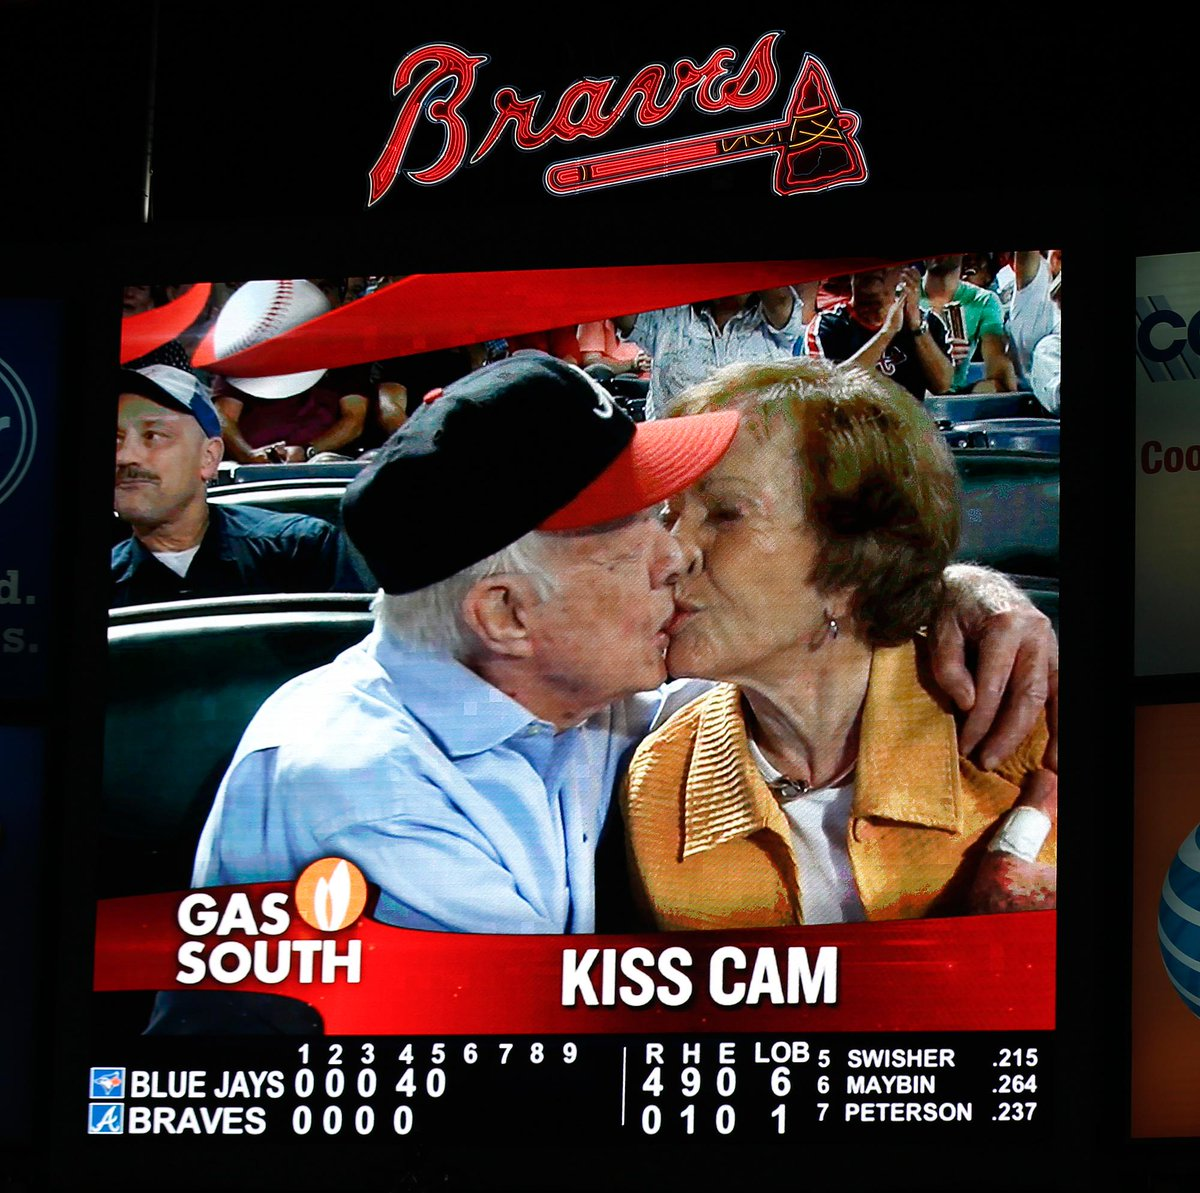 Jimmy Carter and wife Rosalynn share smooch on 'kiss cam' on Valentine's Day